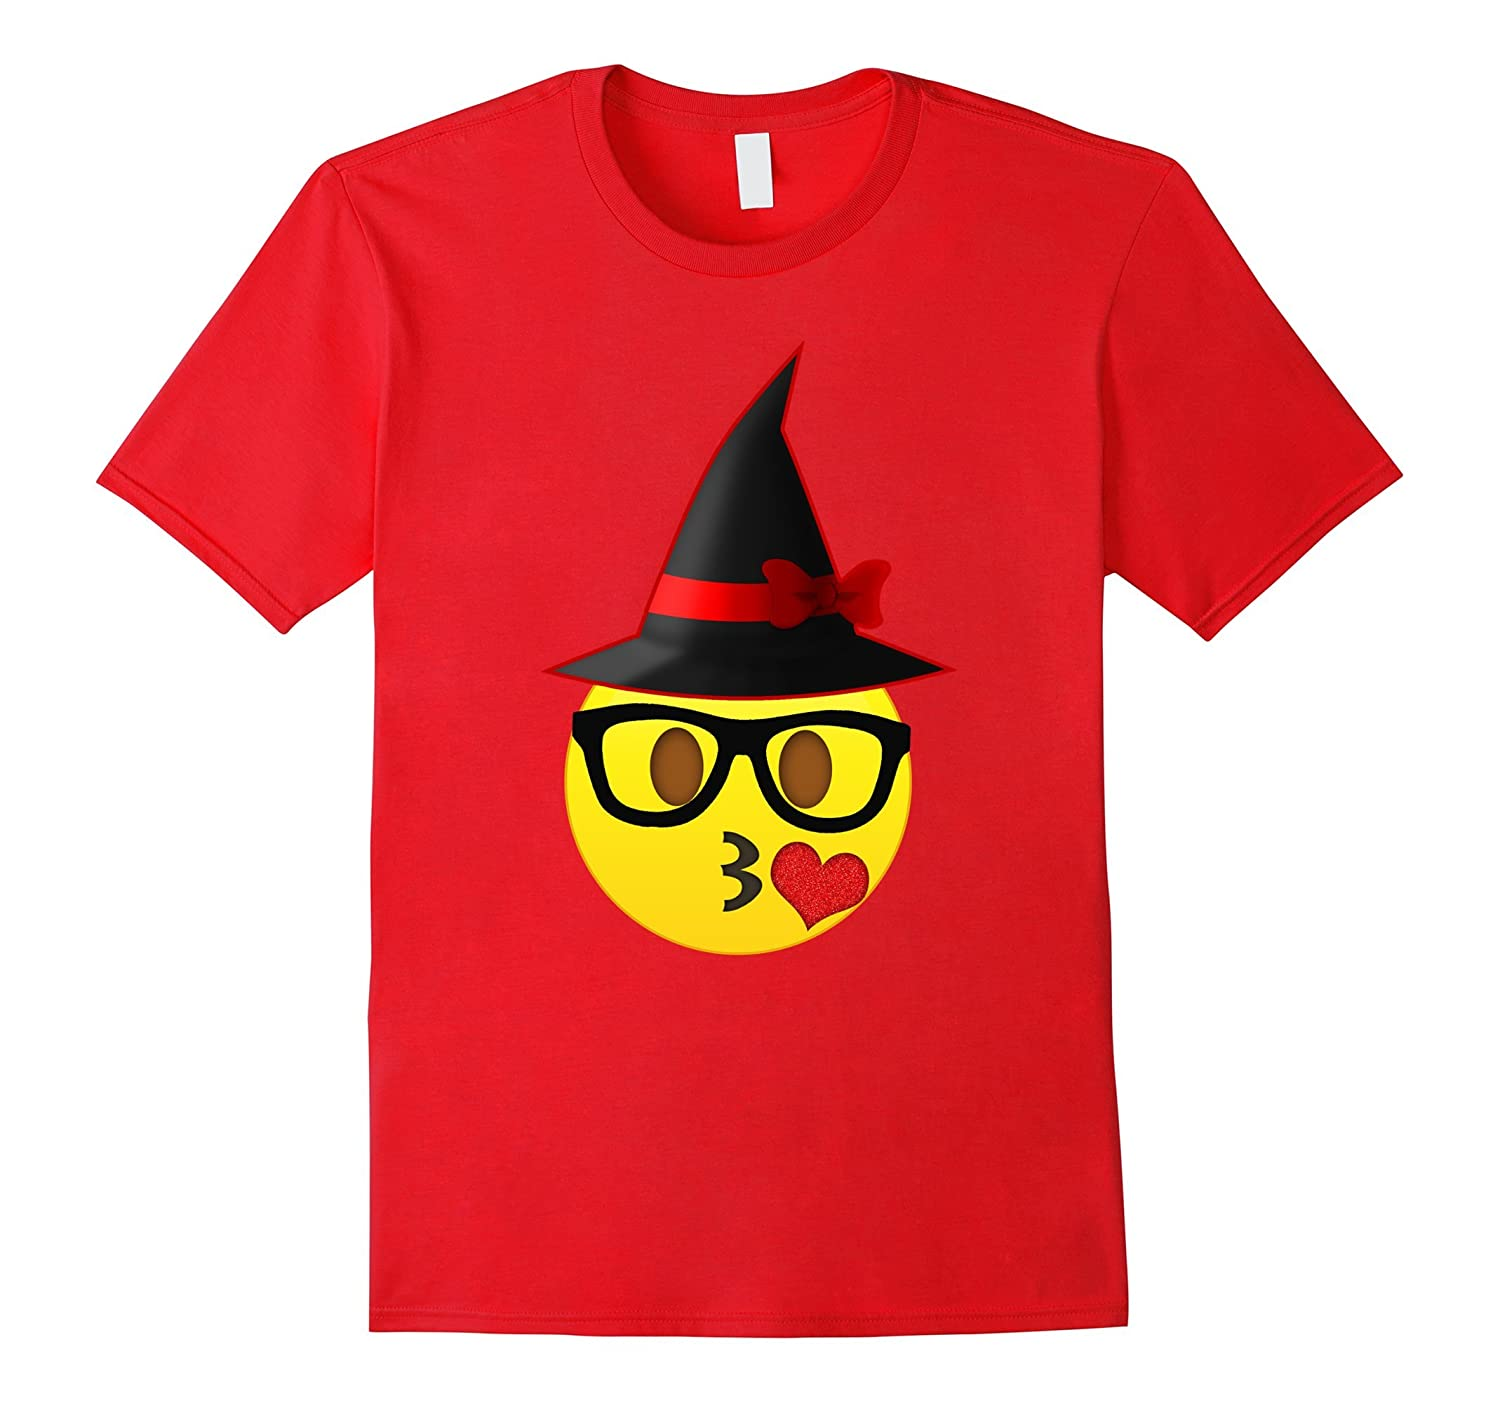 Nerd Emoji Witch Hat Halloween T-Shirt for Girls and Women-FL